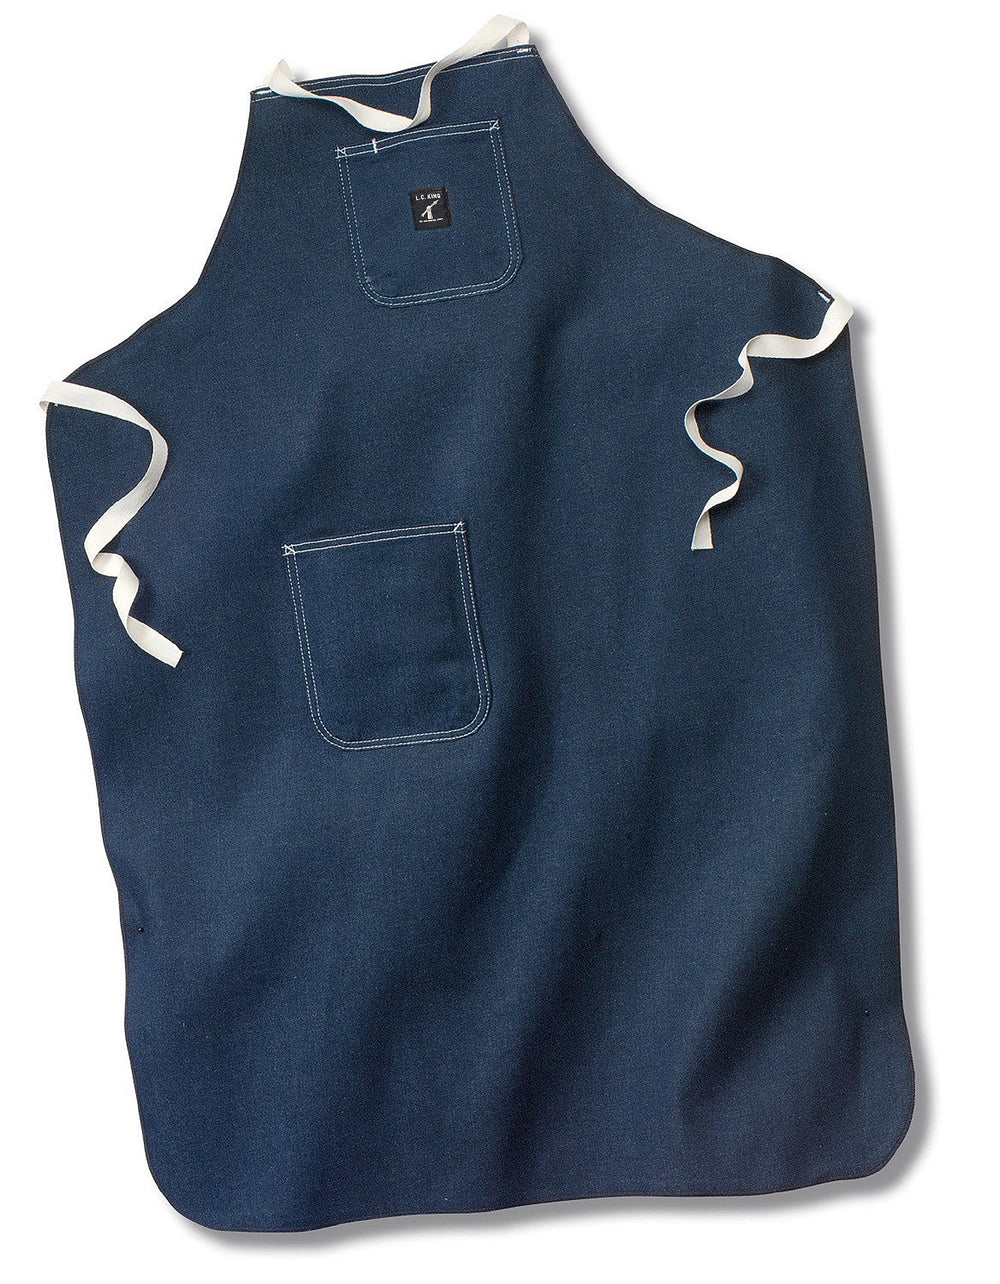 Indigo Denim Shop Apron